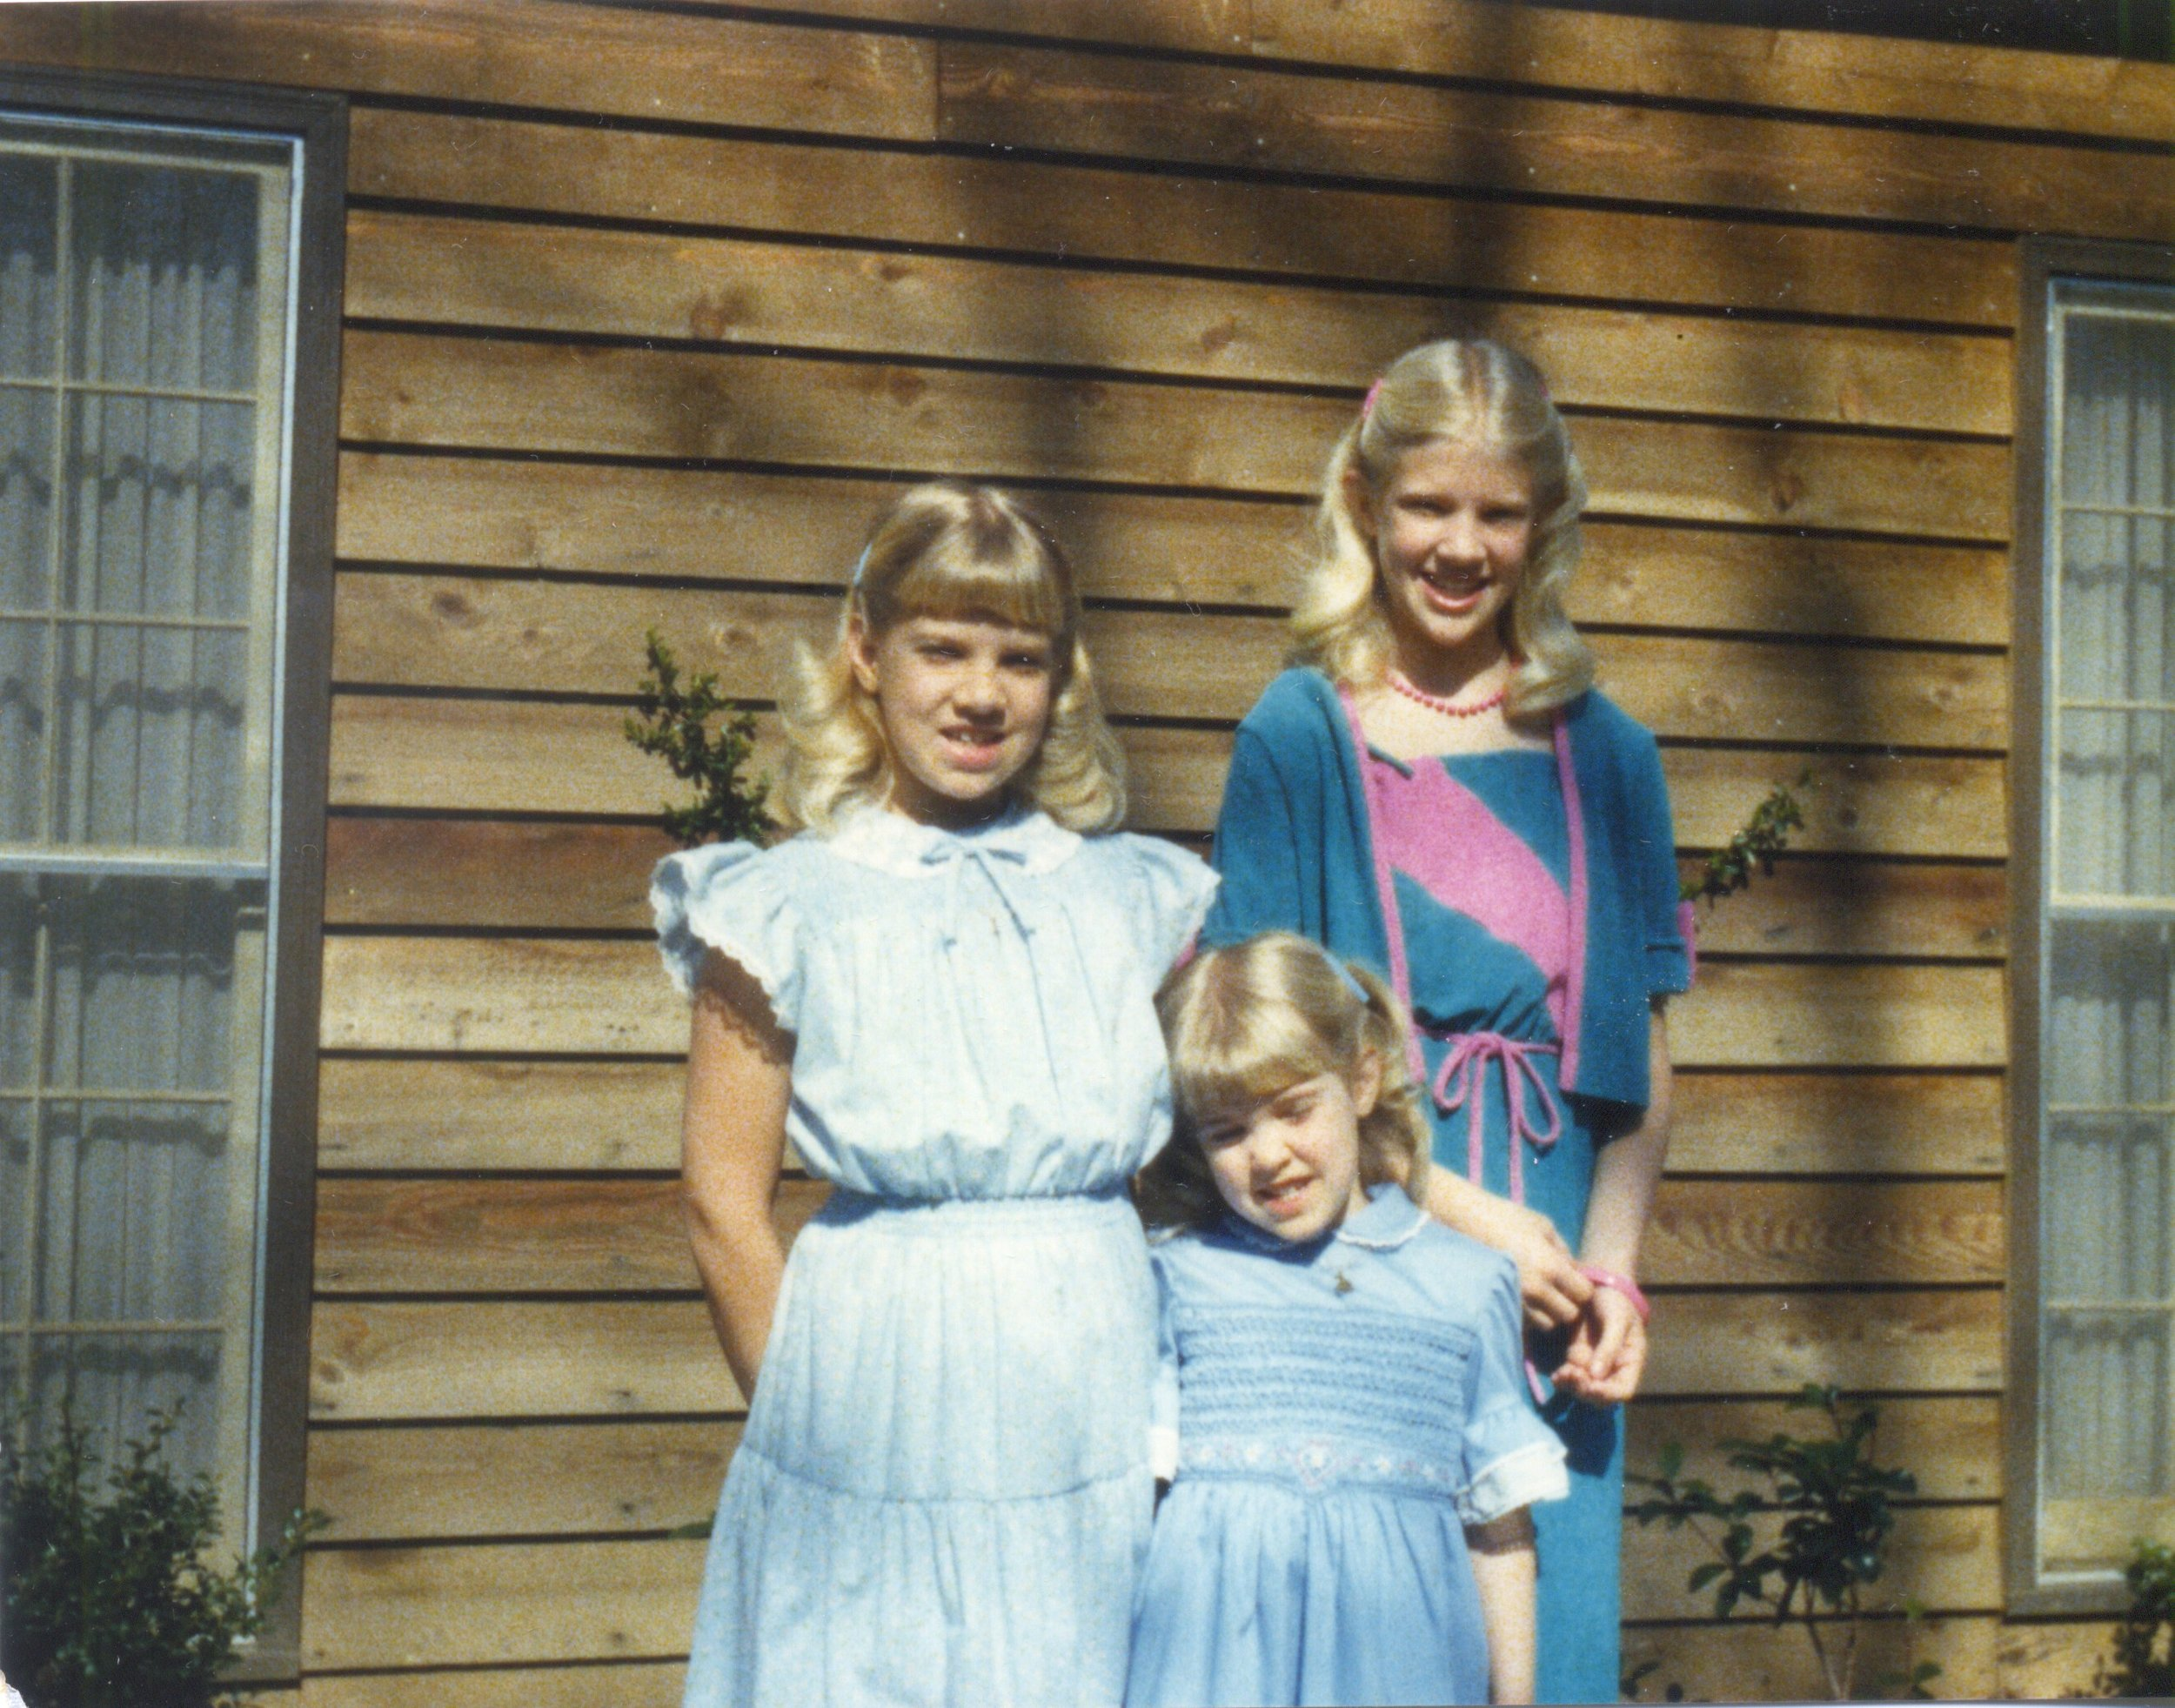 The three daughters in Easter dresses, 1980